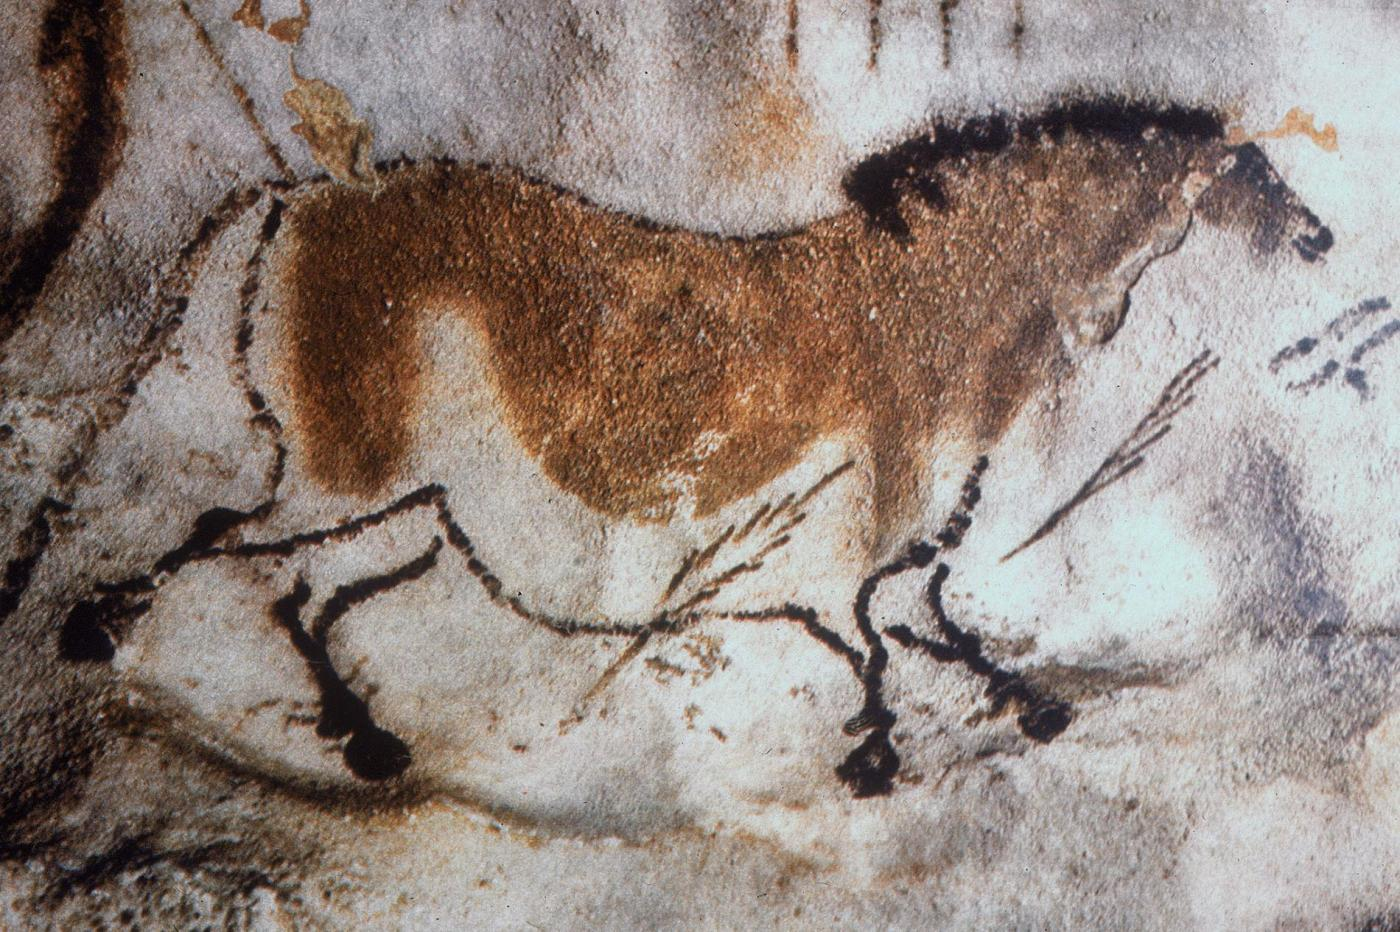 A horse and arrows found painted on the ceiling of Lascaux Cave in Dordogna, France PHOTOGRAPH BY ALINARI ARCHIVES, GETTY